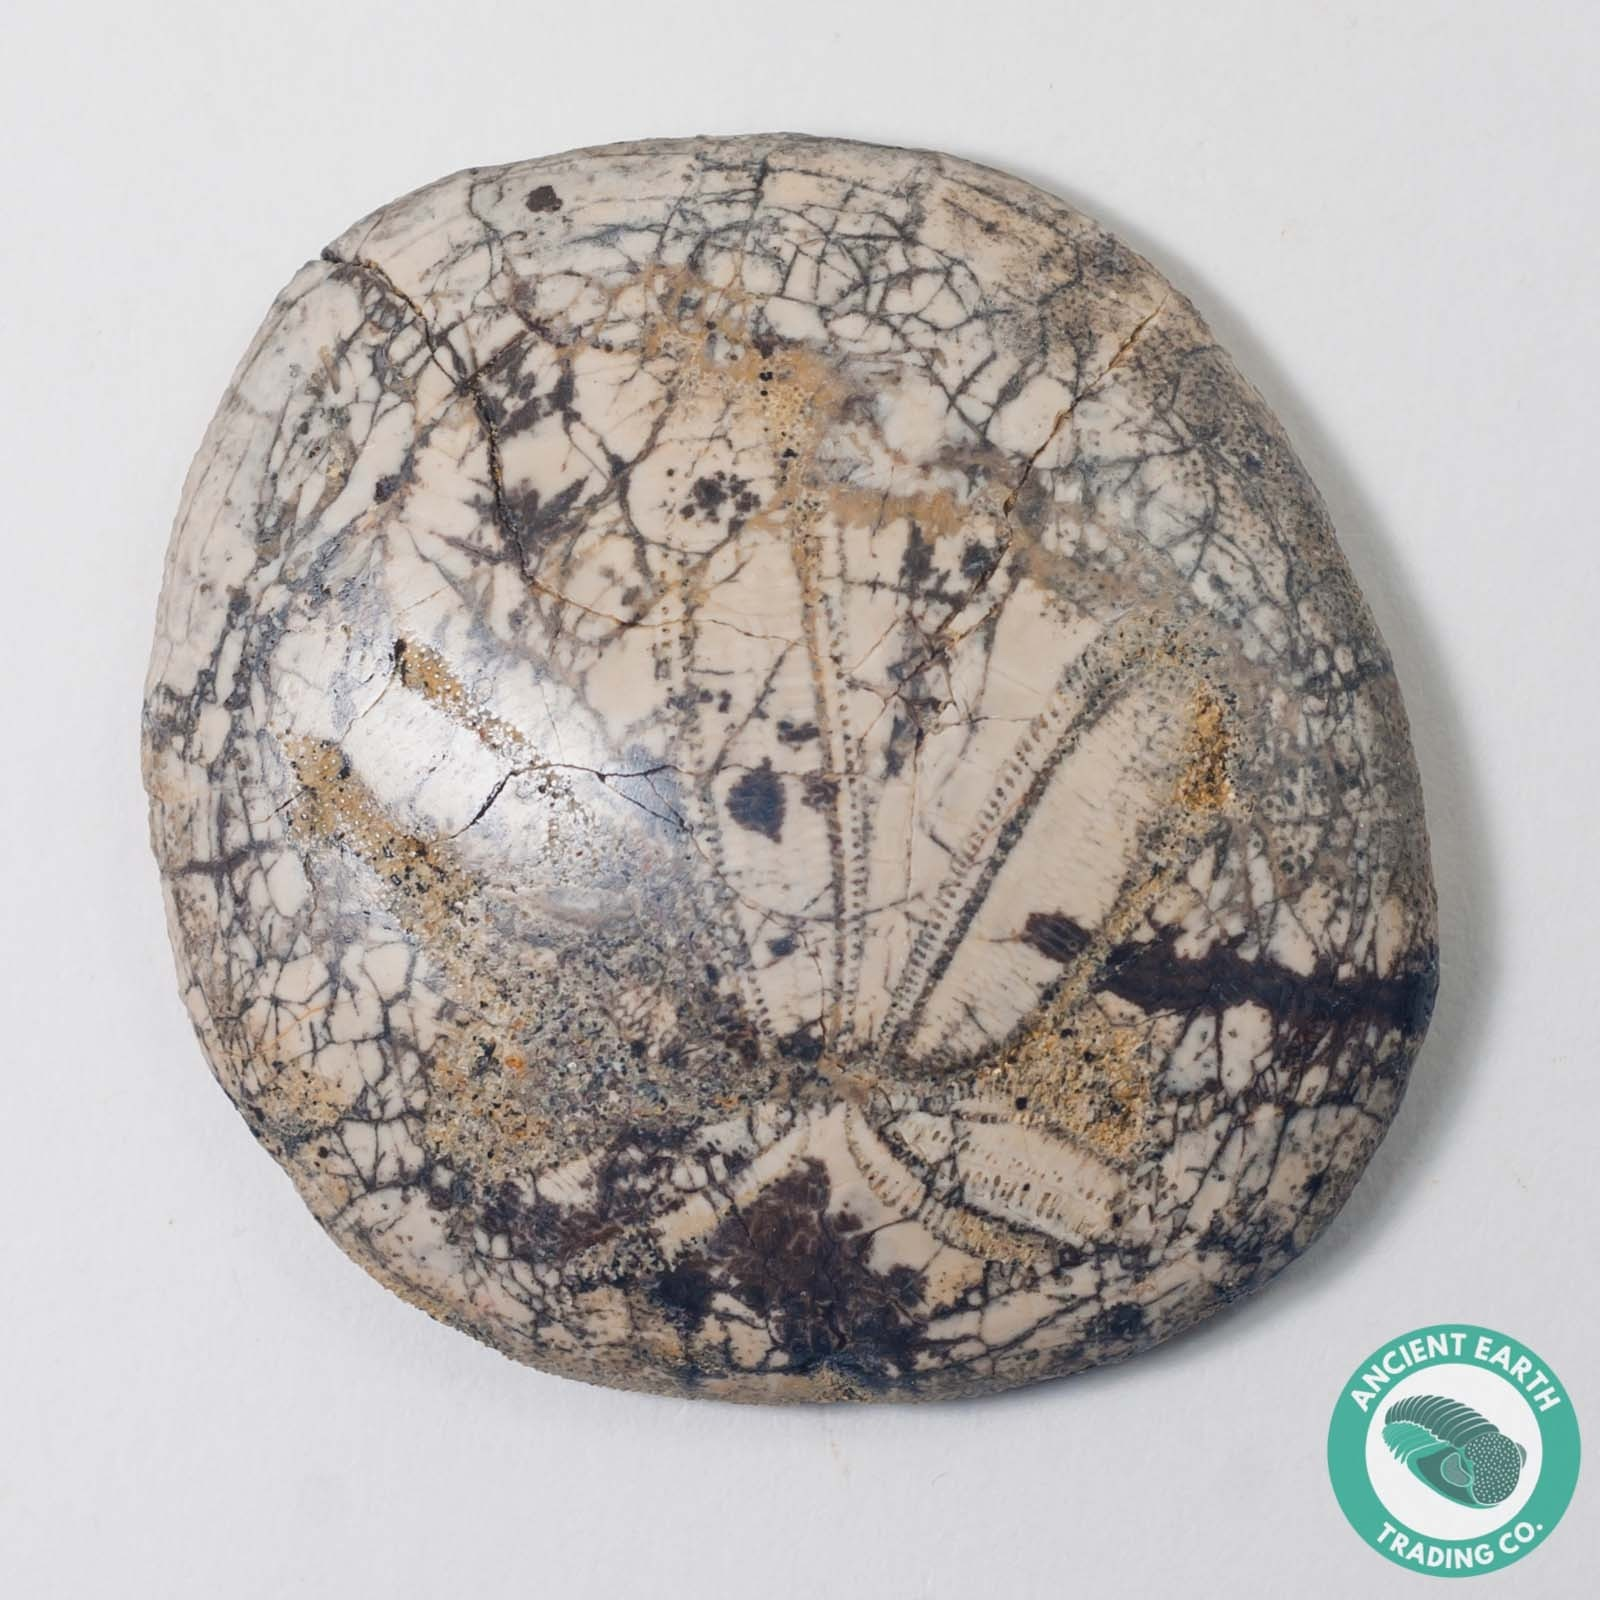 2.09 in Polished Fossil Sand Dollar Dendraster gibbsii - California